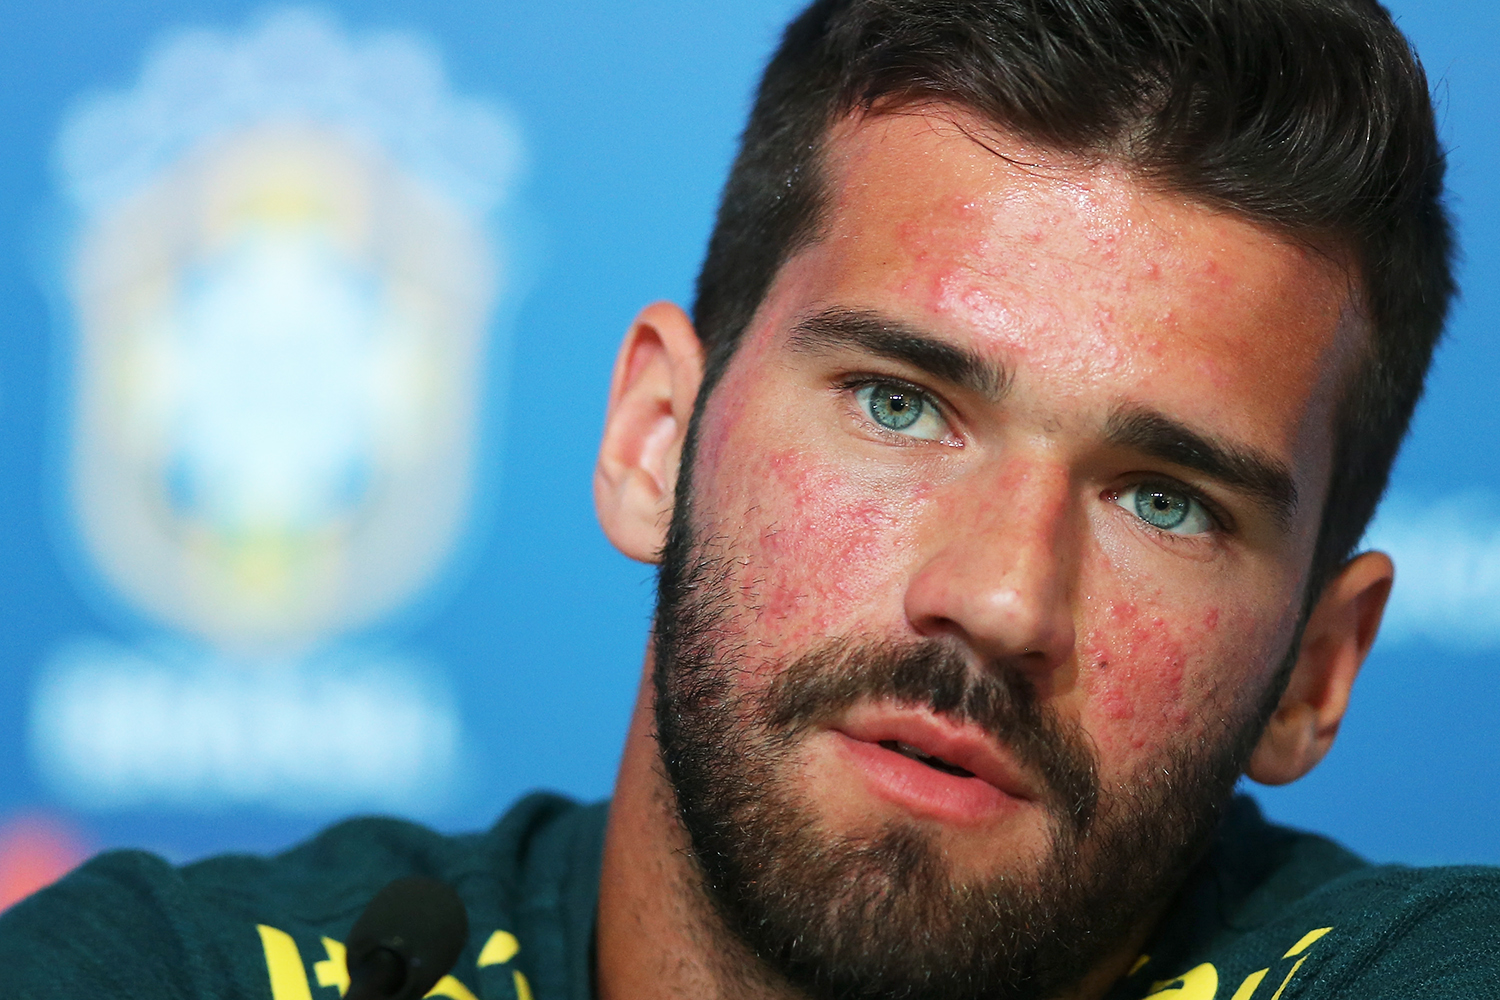 Alisson-Becker-Acne-Closeup